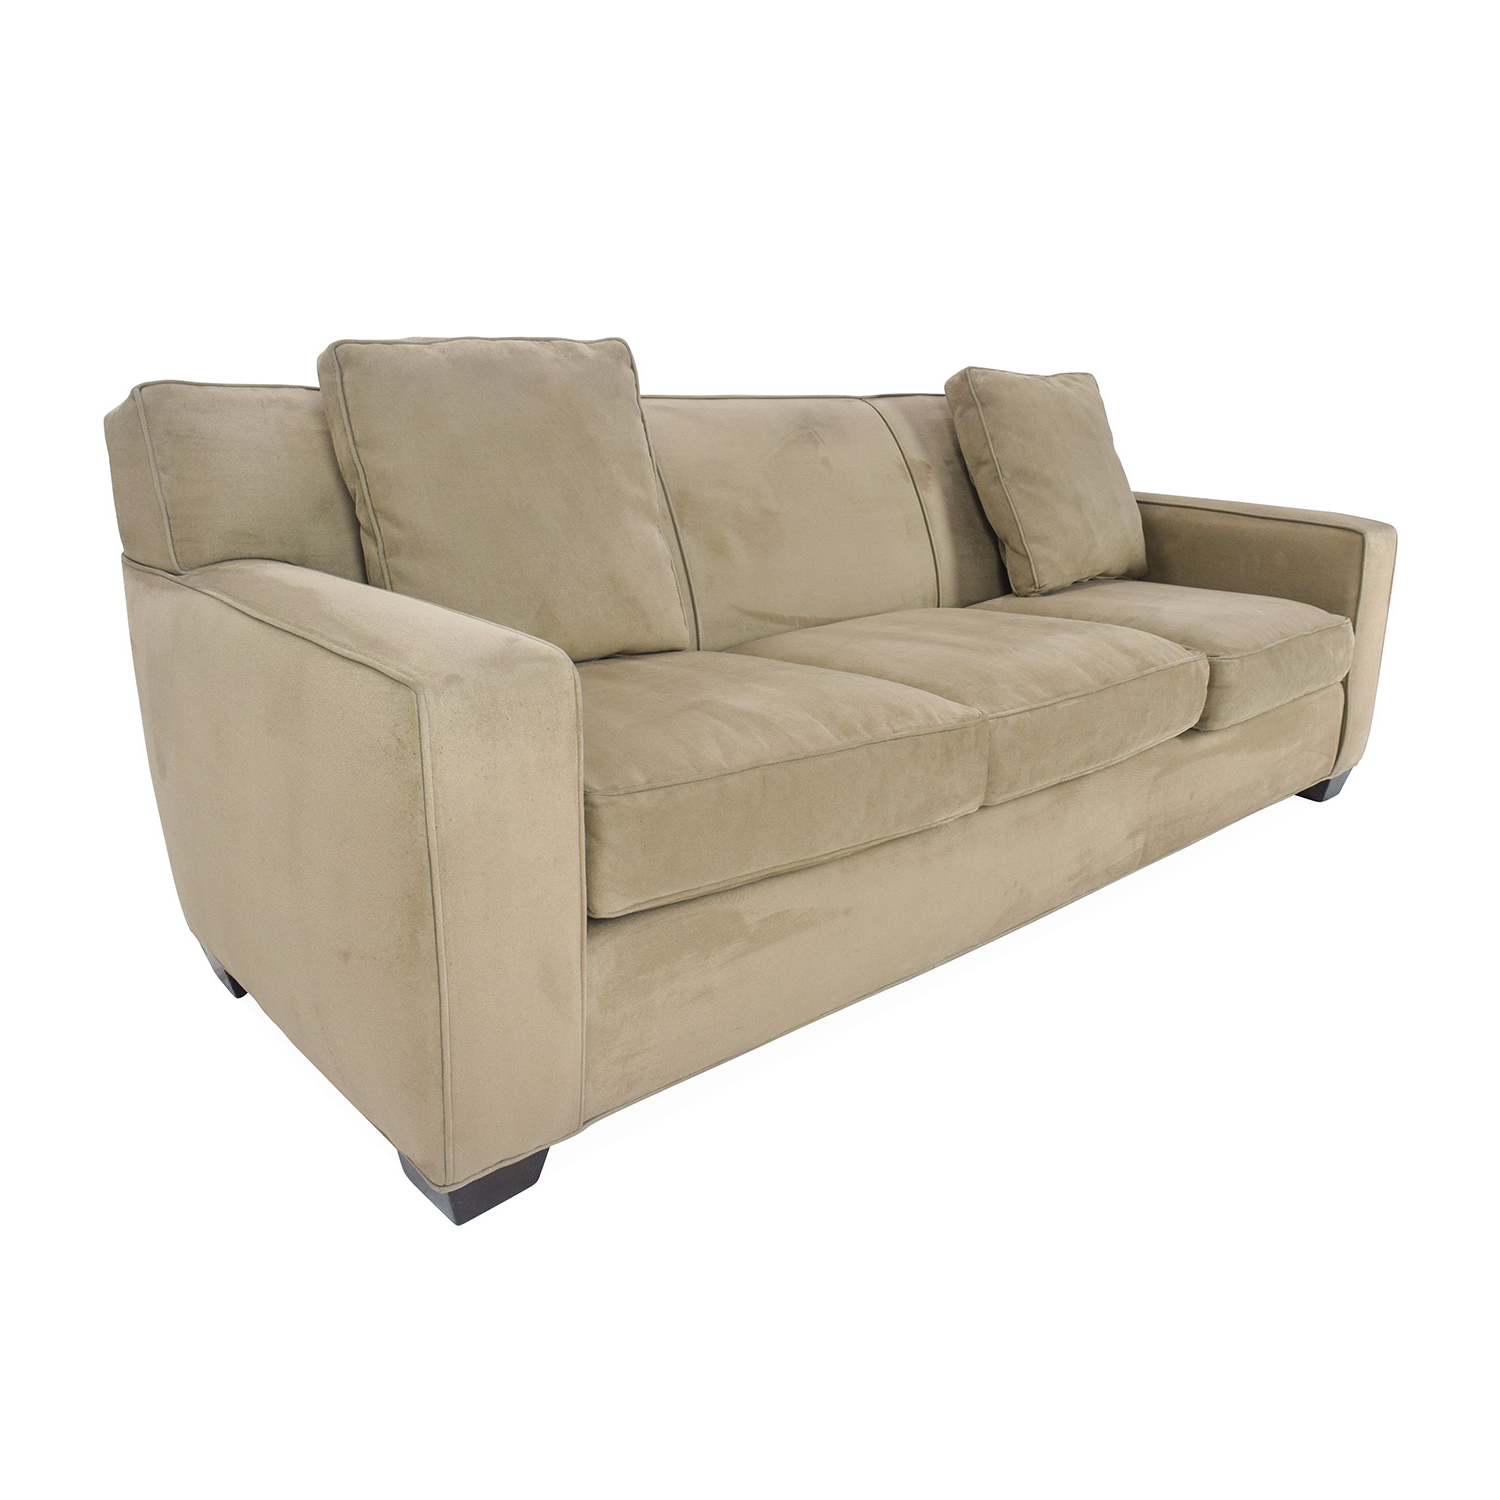 [%78% Off – Crate And Barrel Crate And Barrel Cameron Sofa / Sofas Intended For Latest Cameron Sofa Chairs Cameron Sofa Chairs Within Most Recent 78% Off – Crate And Barrel Crate And Barrel Cameron Sofa / Sofas 2018 Cameron Sofa Chairs For 78% Off – Crate And Barrel Crate And Barrel Cameron Sofa / Sofas Most Popular 78% Off – Crate And Barrel Crate And Barrel Cameron Sofa / Sofas In Cameron Sofa Chairs%] (View 10 of 20)